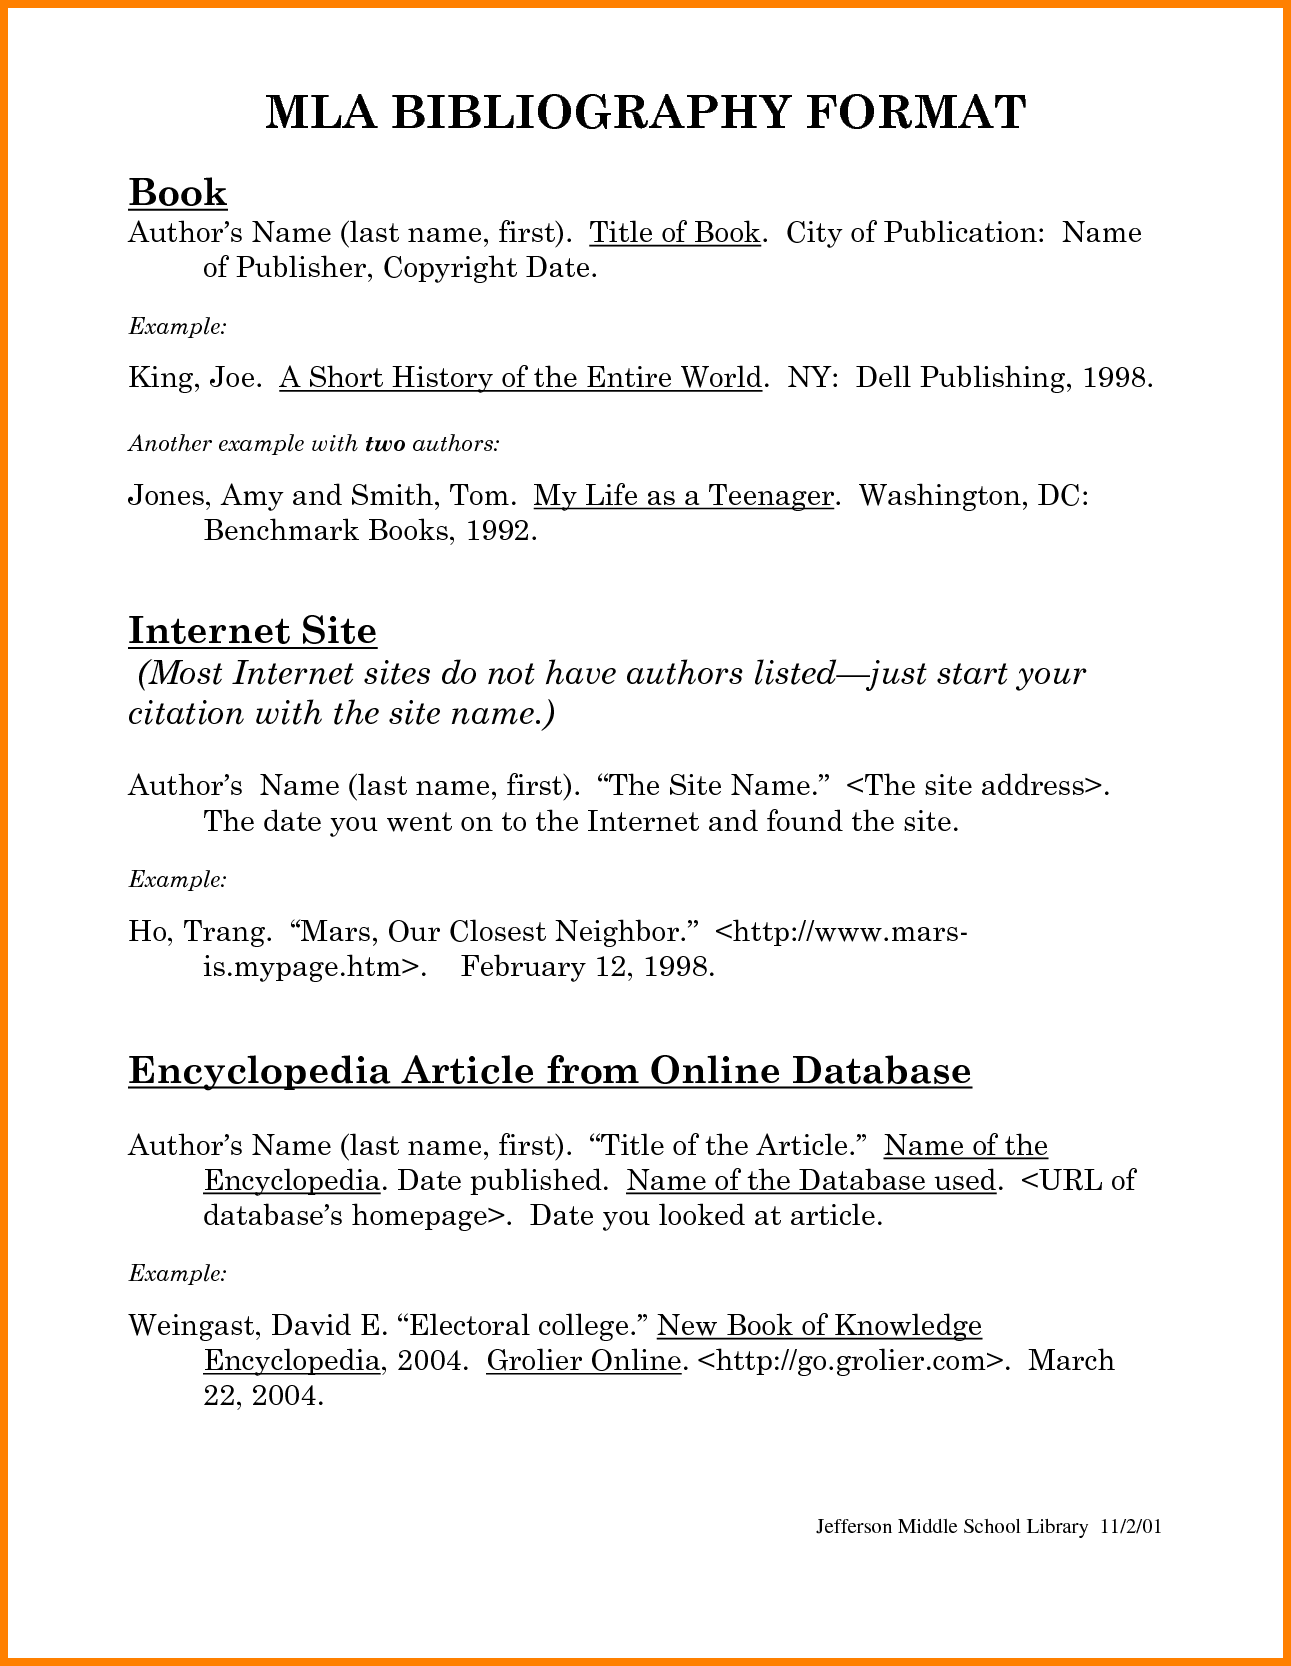 Bibliography Sample Mla